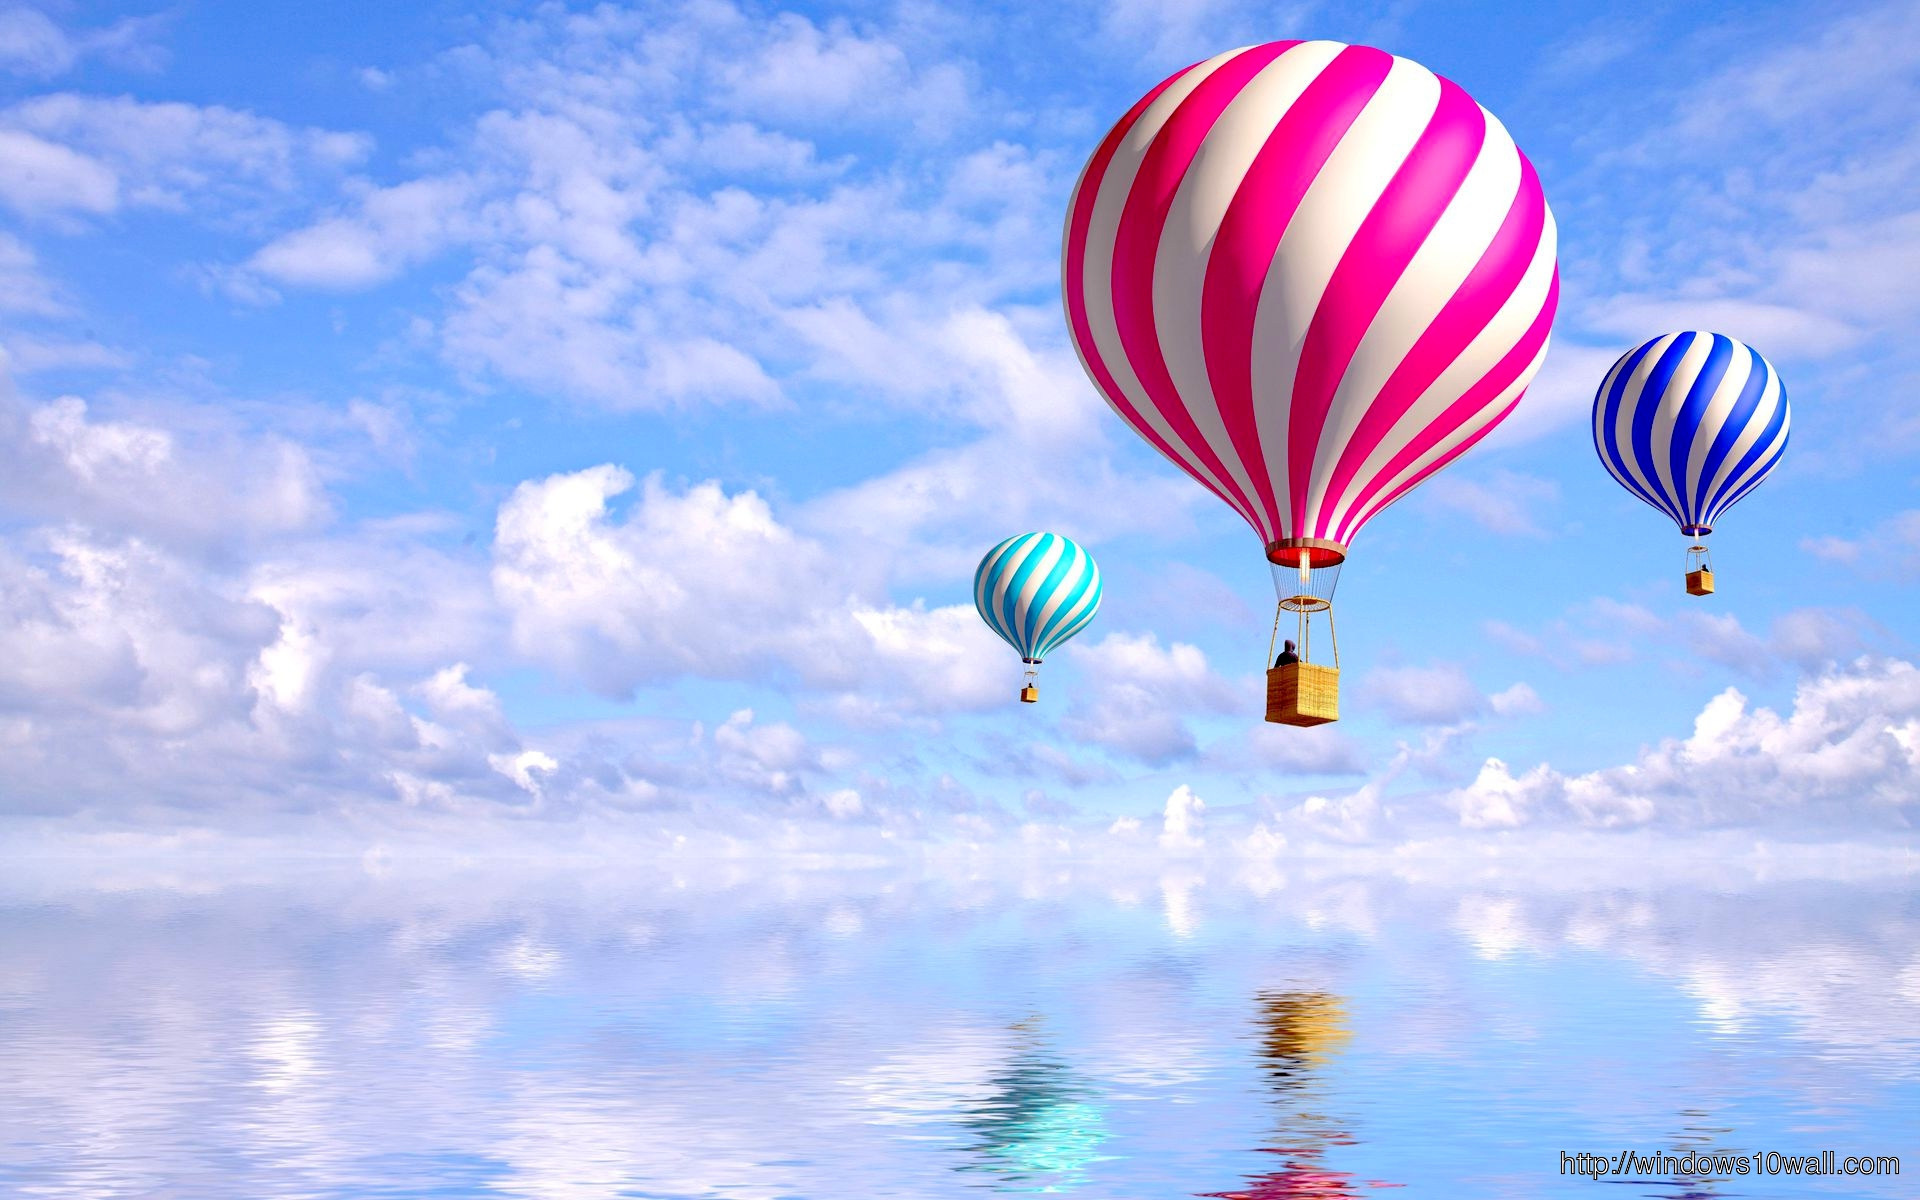 Candy-Pop-Balloons-Flying-in-Air-HD-Wallpaper